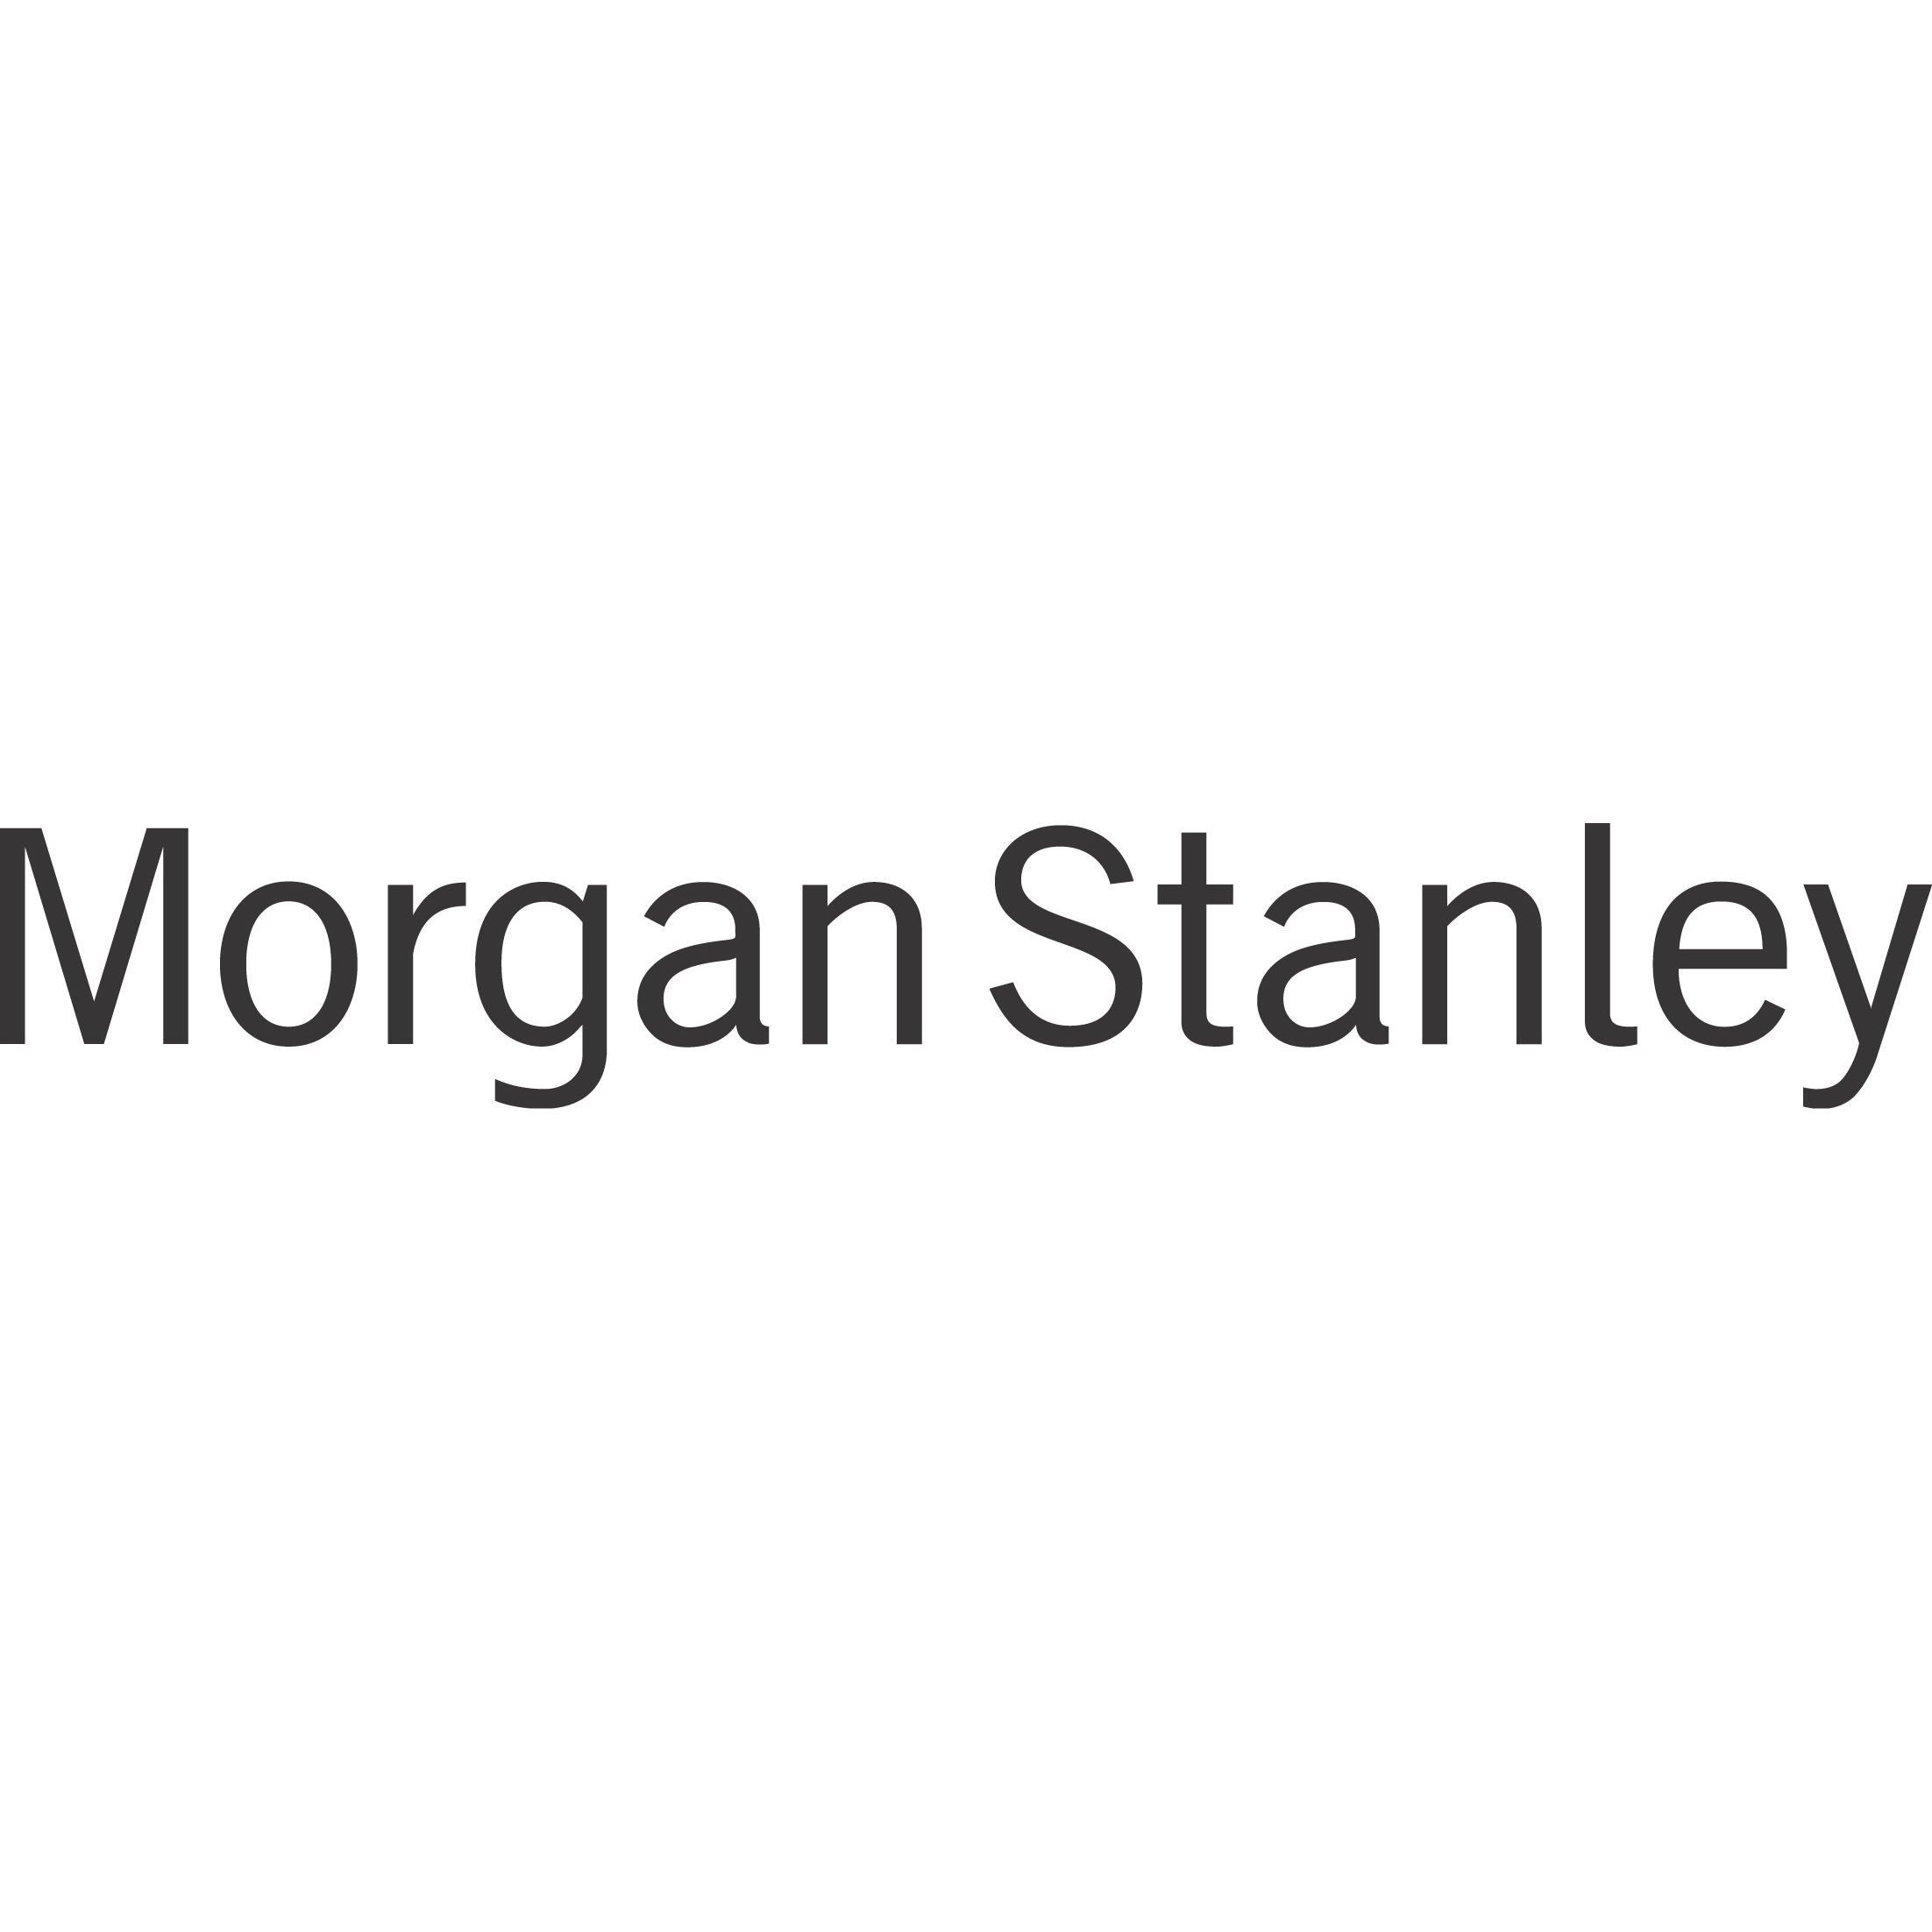 Lance P Eaton - Morgan Stanley | Financial Advisor in Phoenix,Arizona